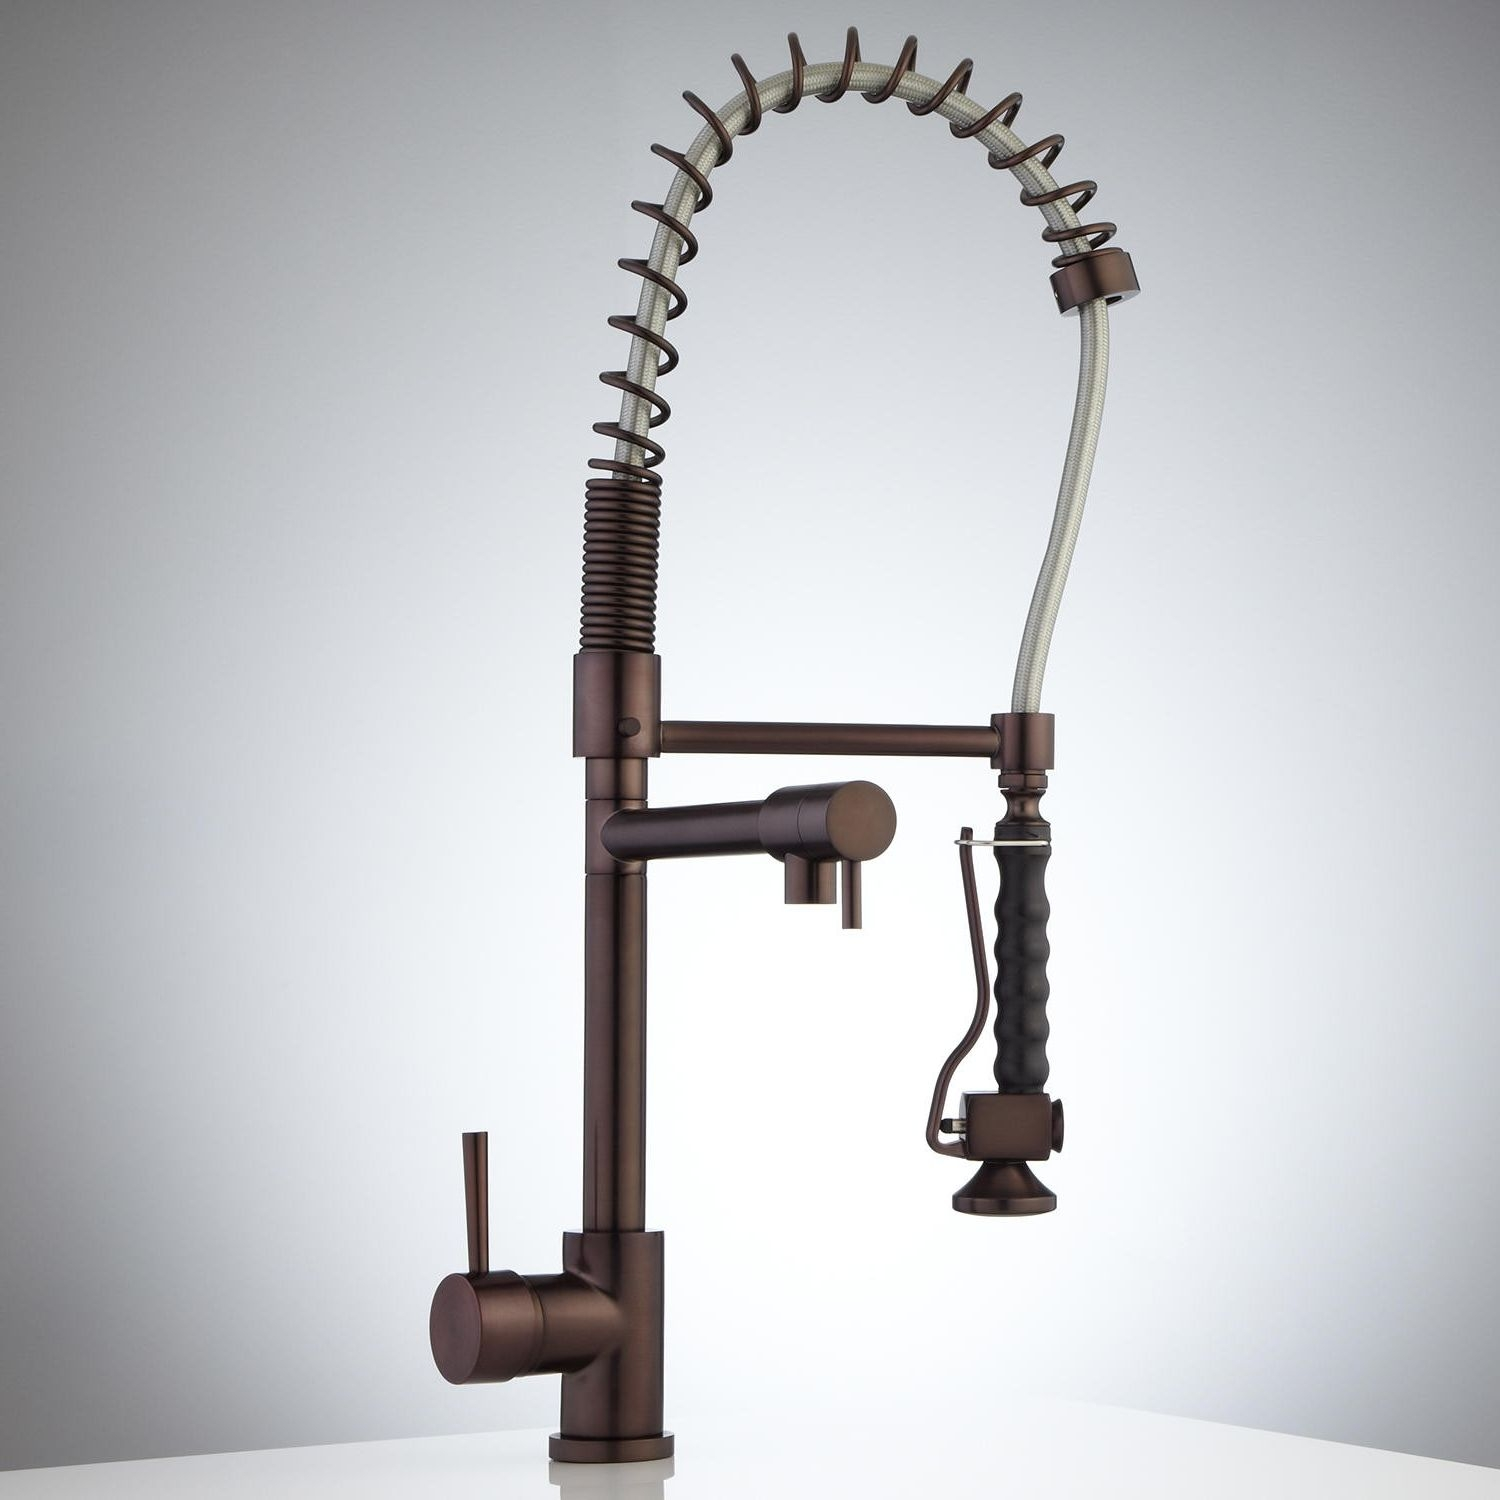 Ideas, industrial style kitchen faucets industrial style kitchen faucets industrial kitchen faucet good furniture 1500 x 1500  .